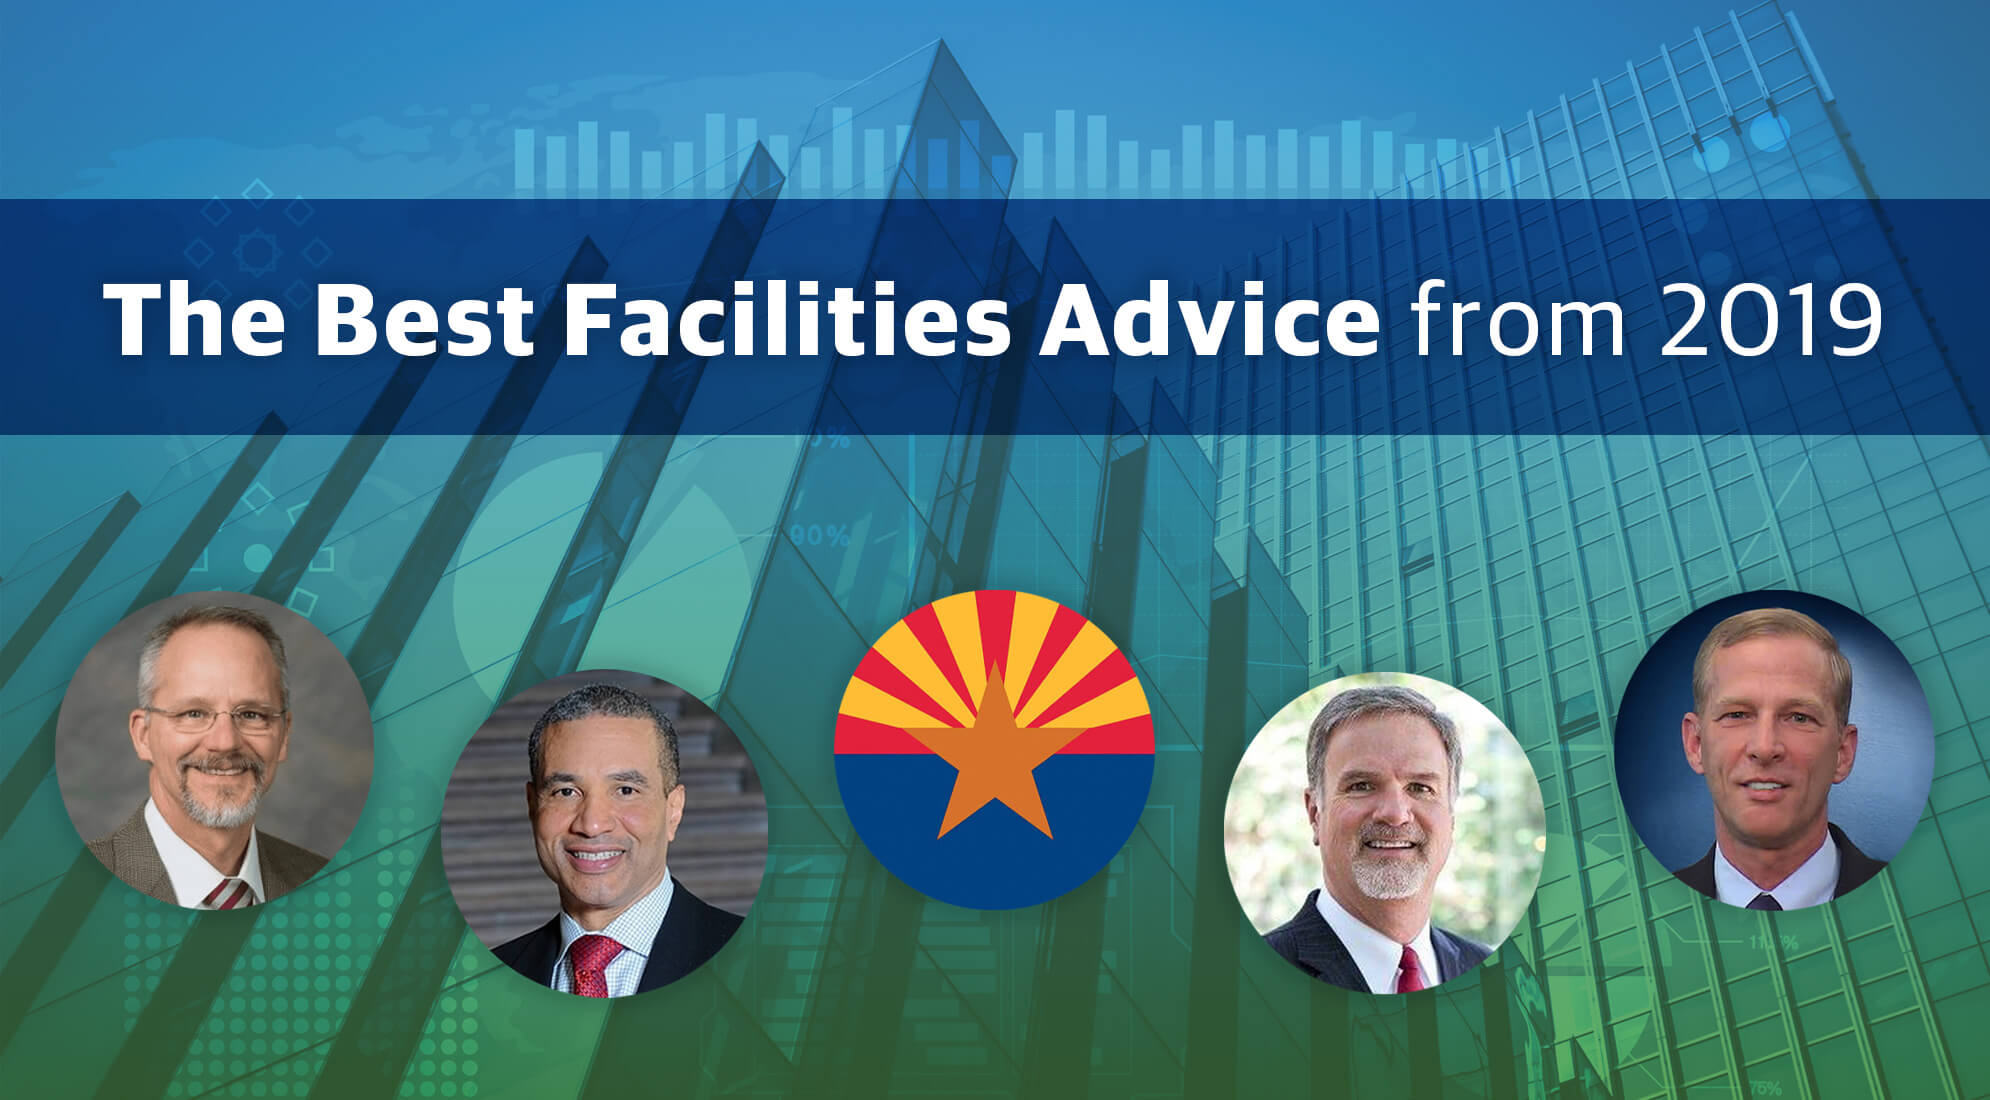 Best facilities advice from 2019 interviews